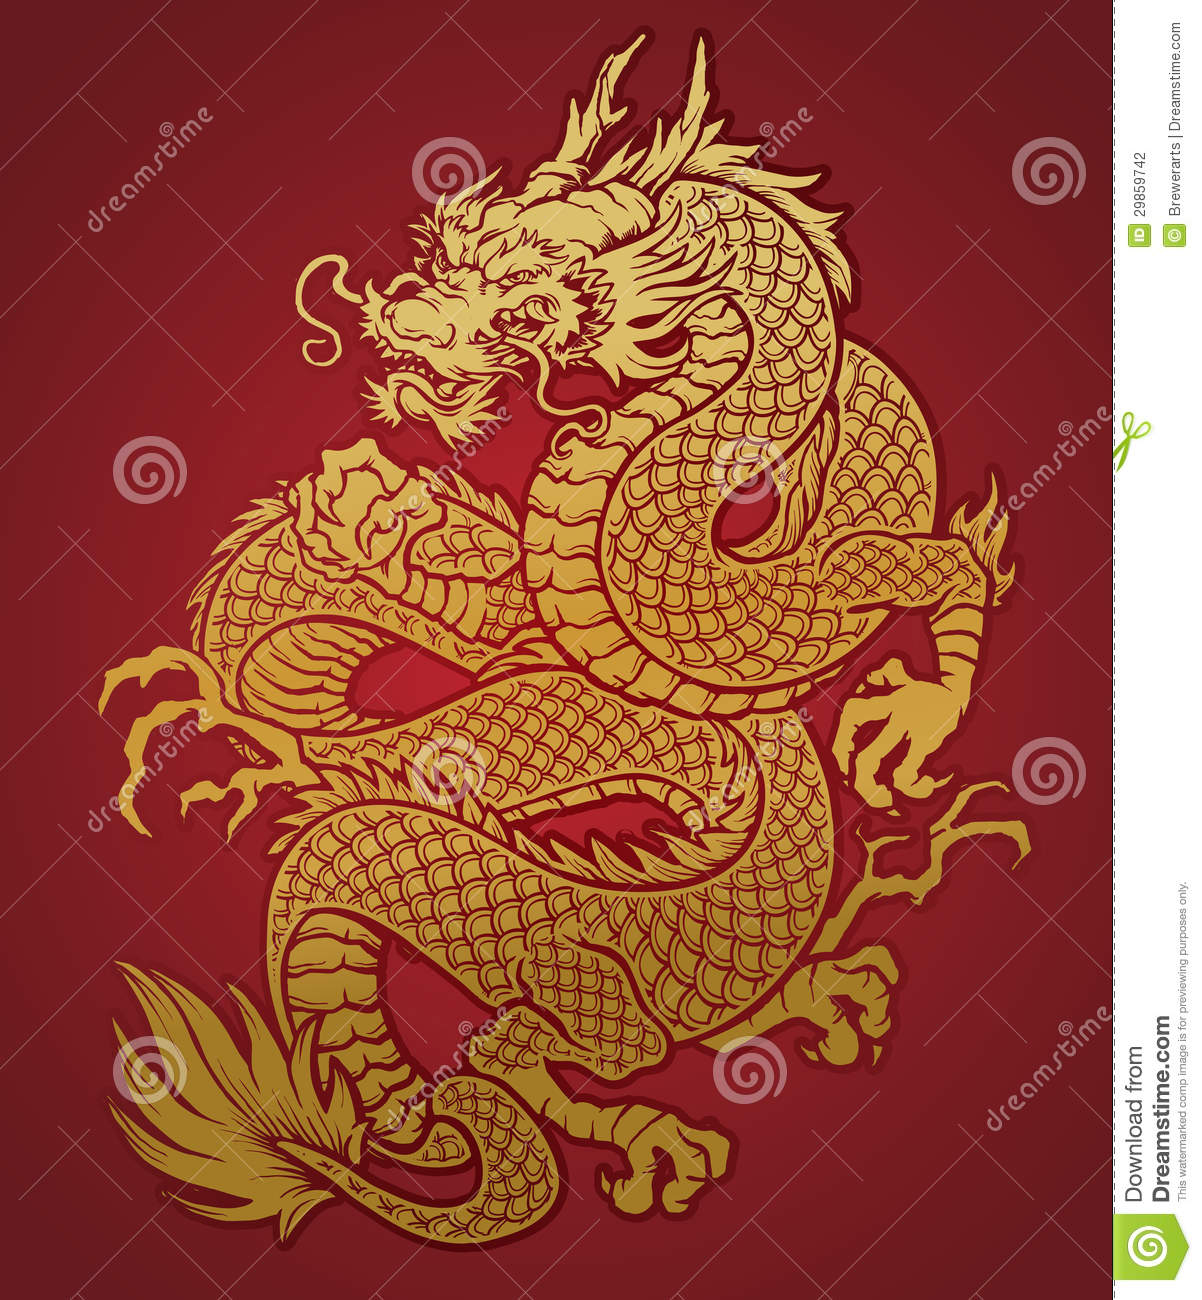 Coiled Chinese Dragon Gold On Red Stock Photography - Image: 29859742